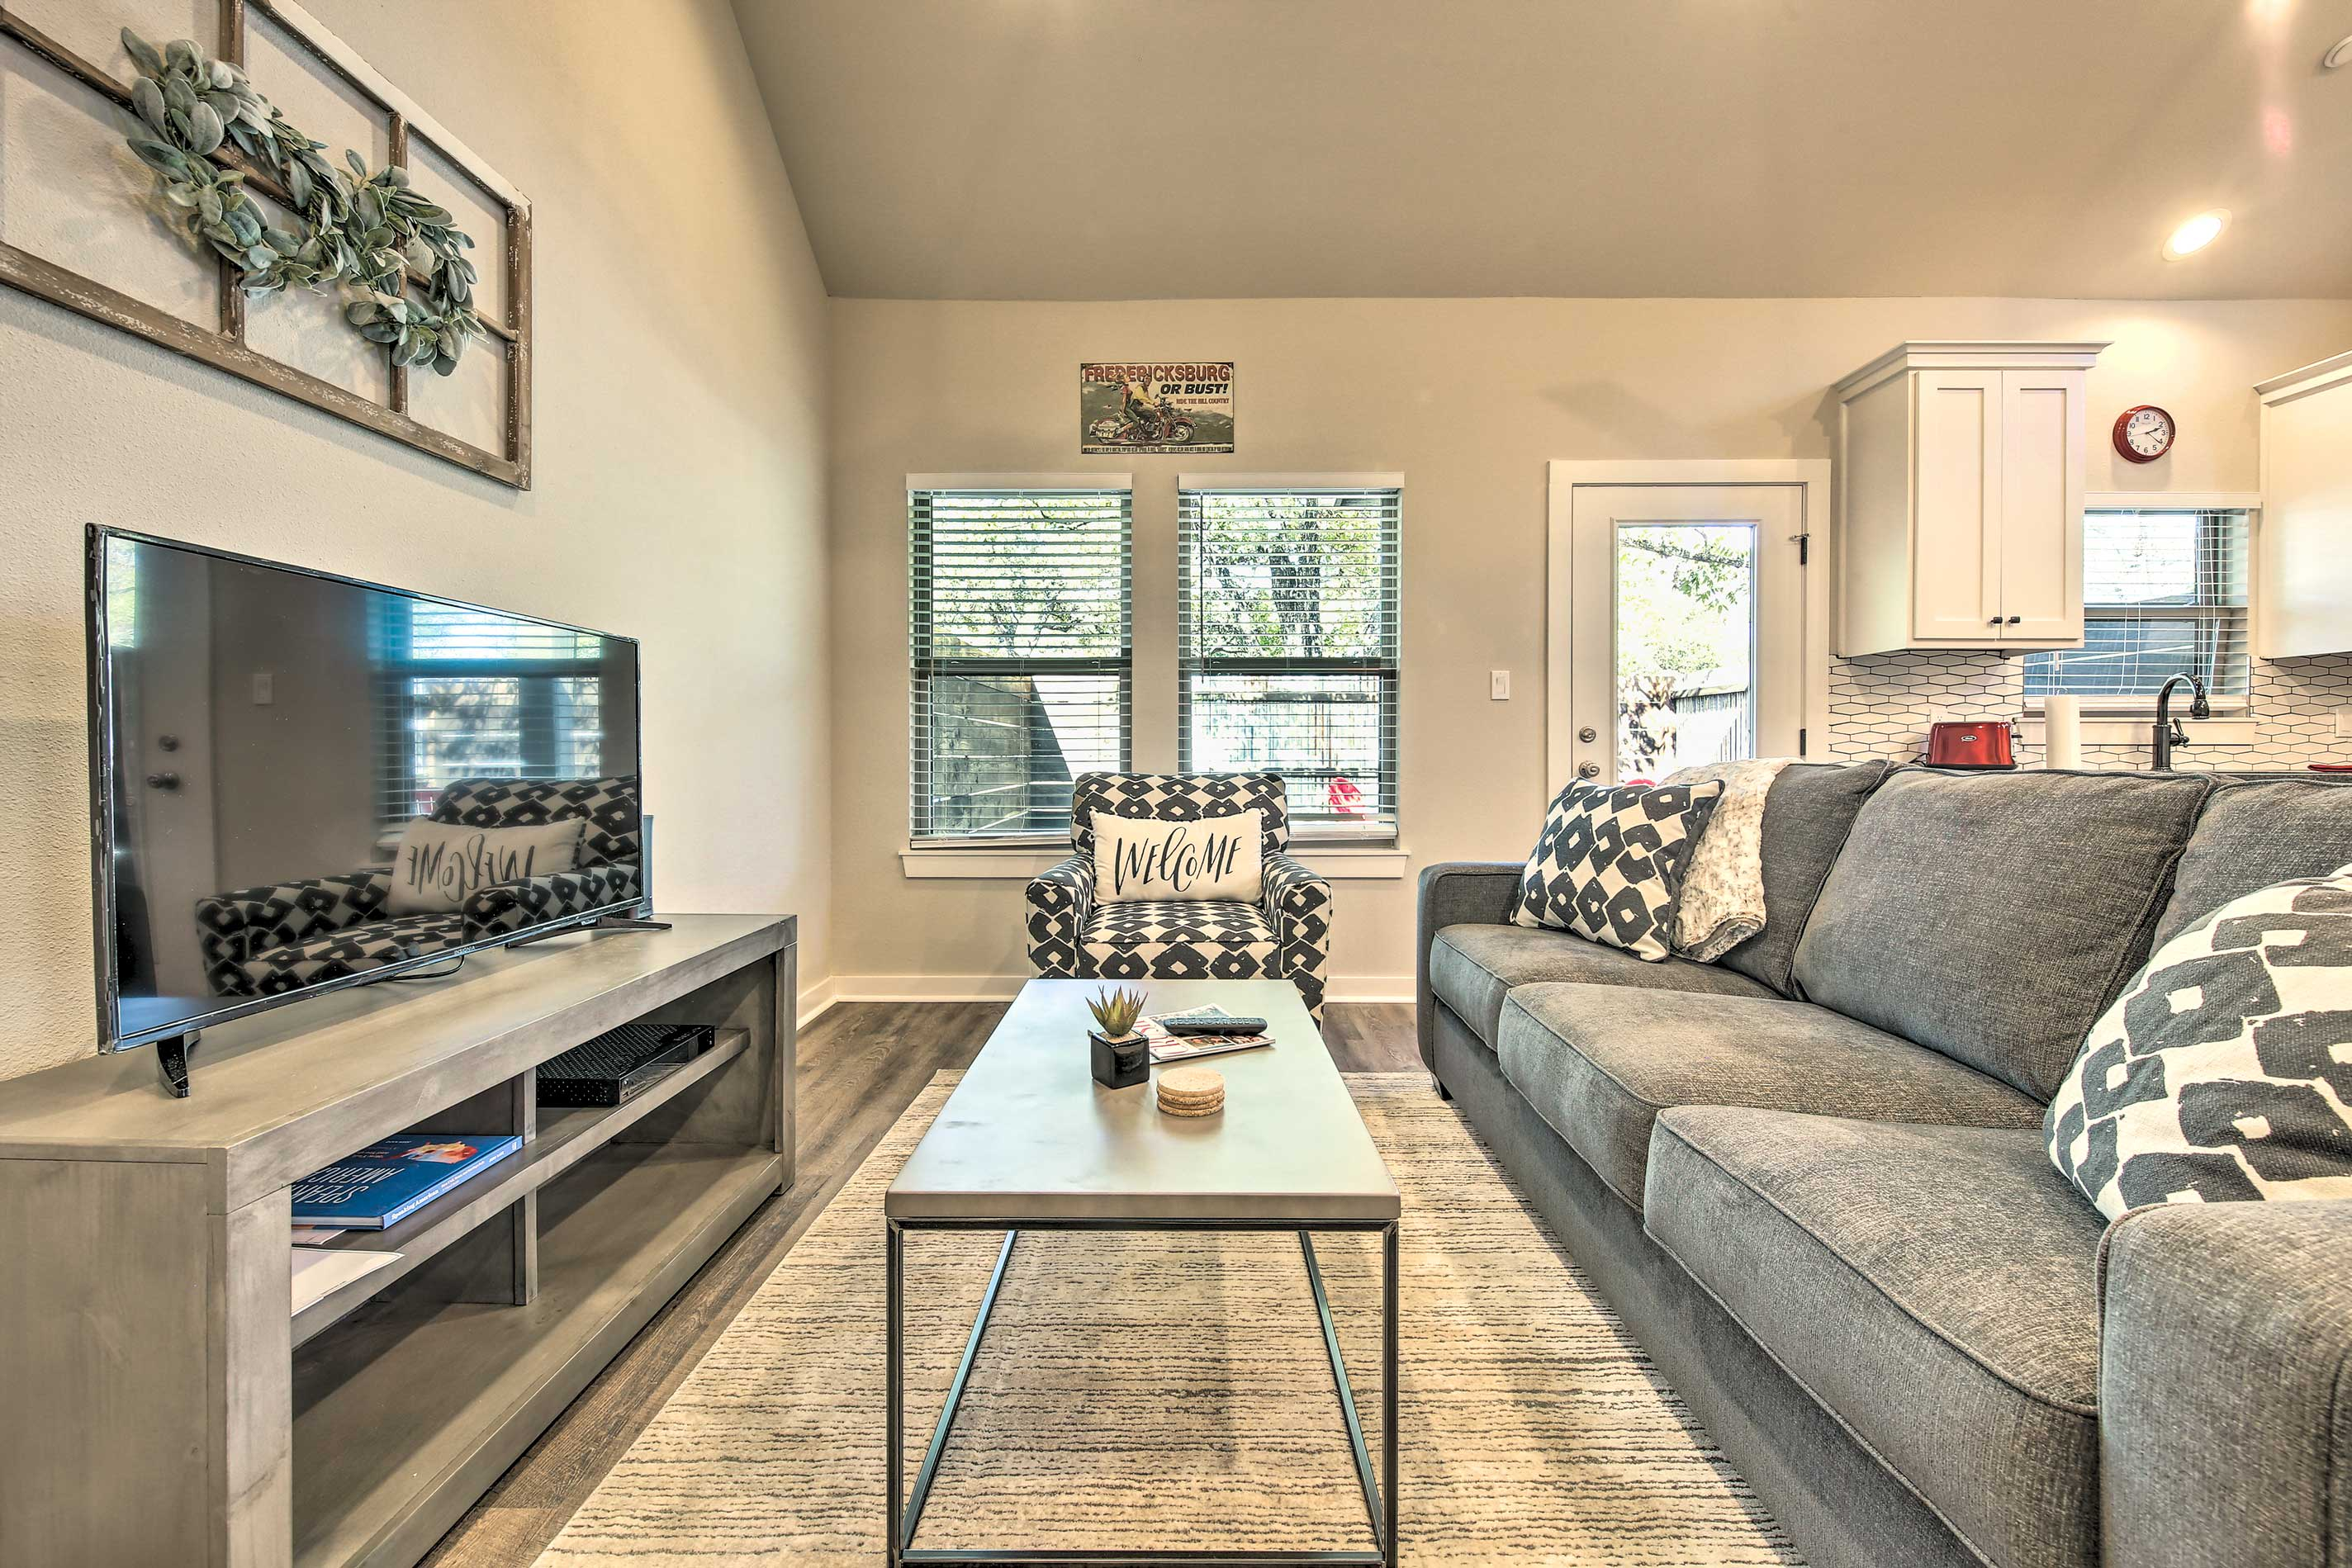 Newly built, the interior boasts brand new features and furnishings throughout.